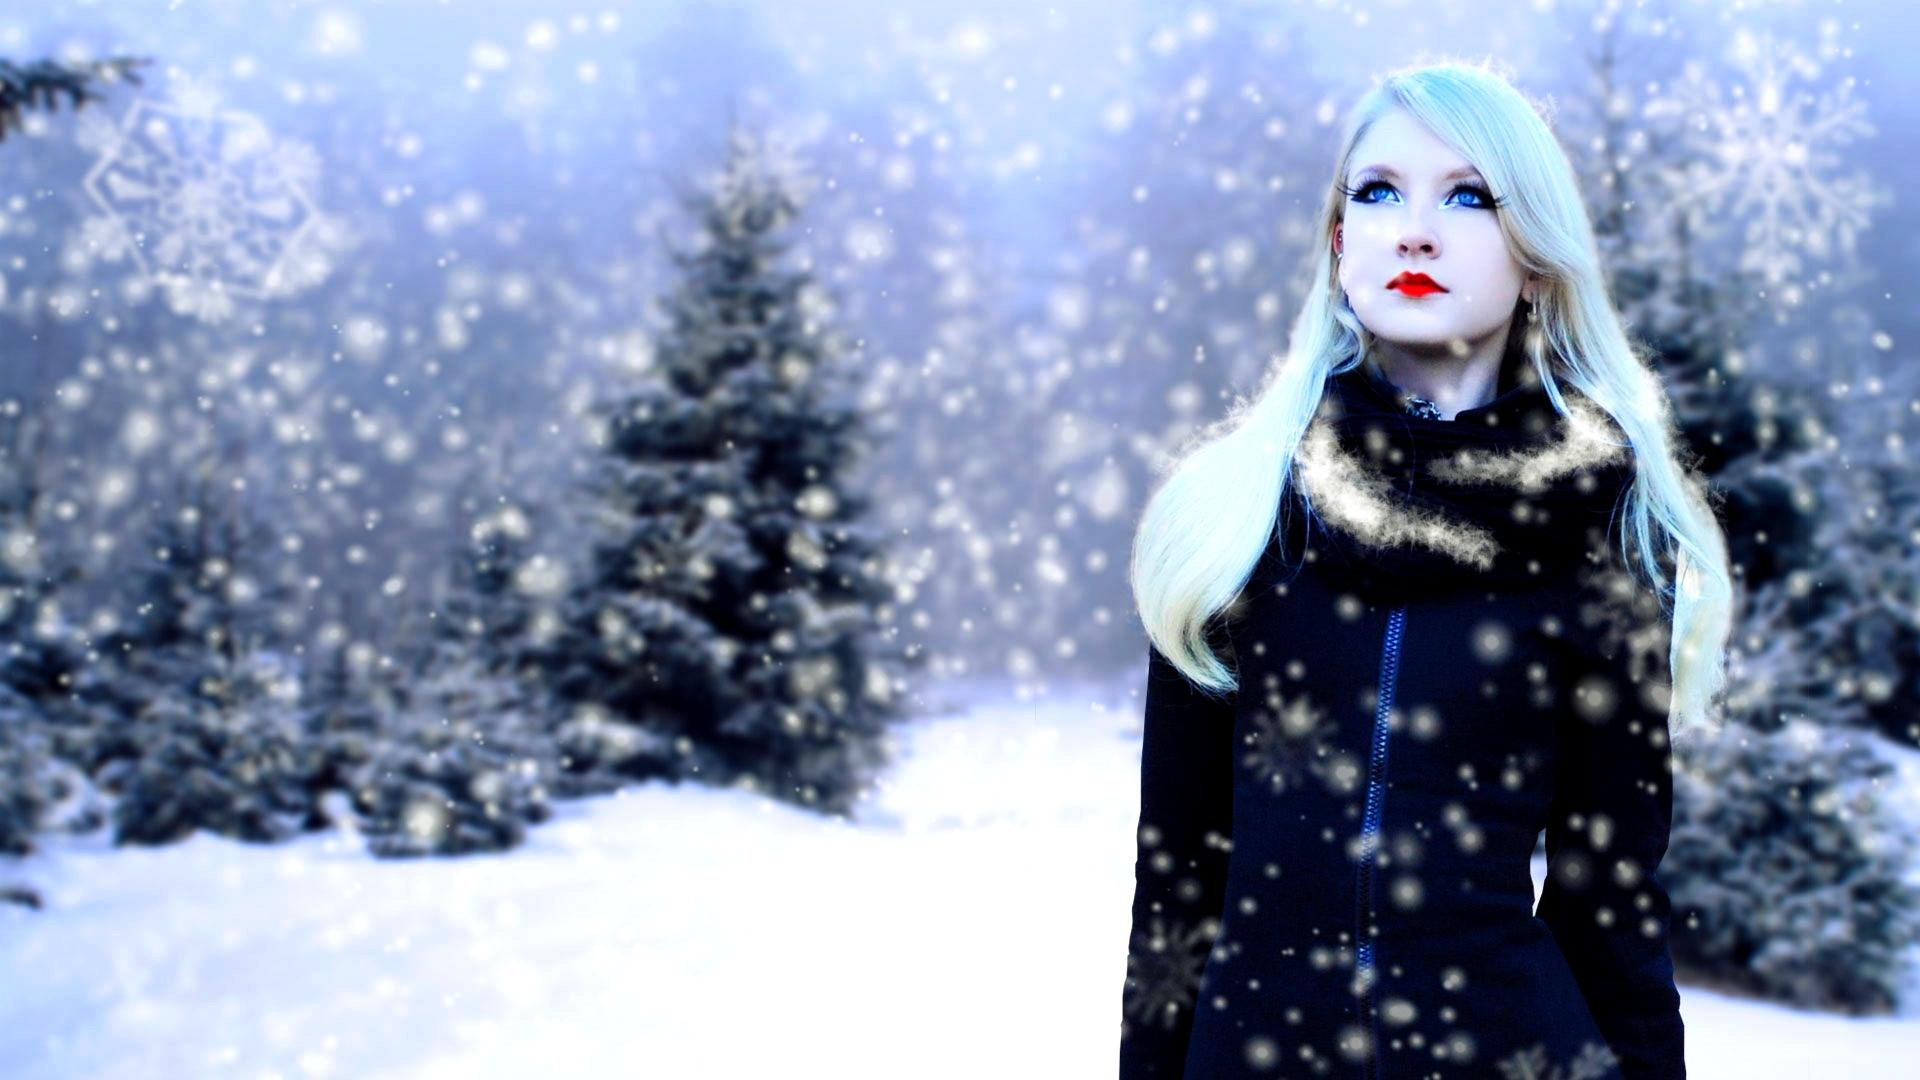 Winter Images   Wallpaper High Definition High Quality Widescreen 1920x1080